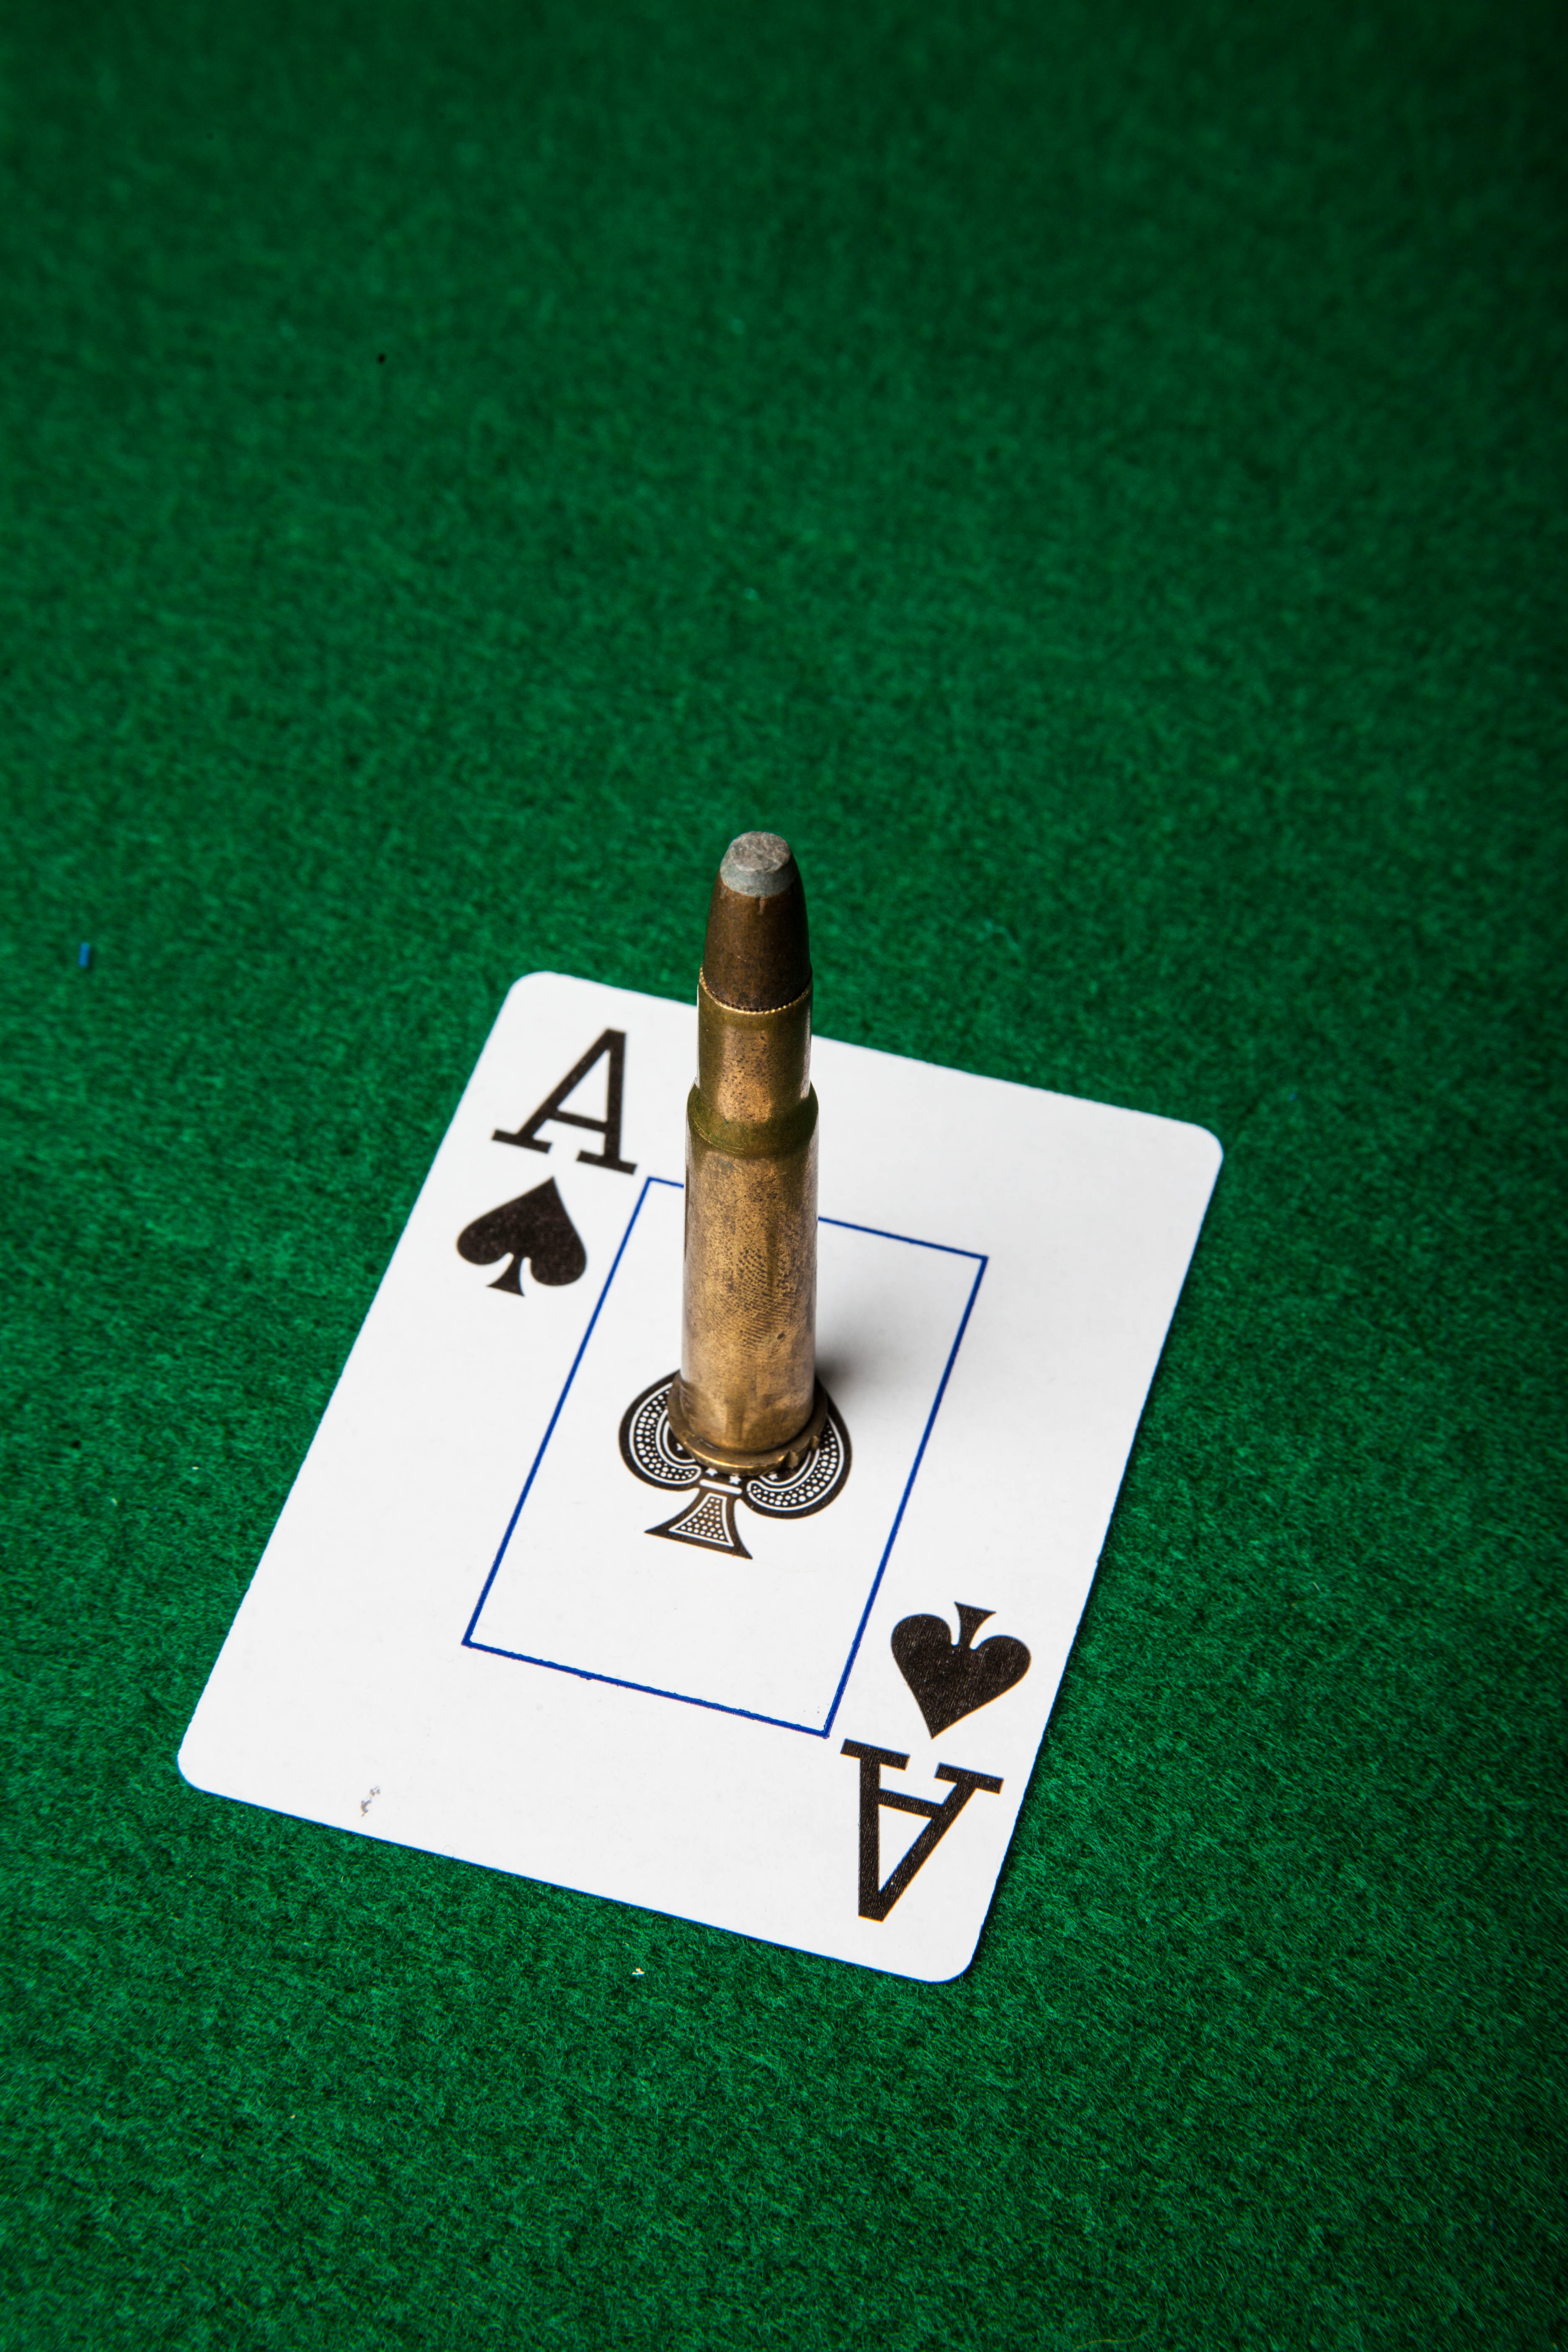 Ace of spade with bullet, Ace, Gambling, Threat, Table, HQ Photo